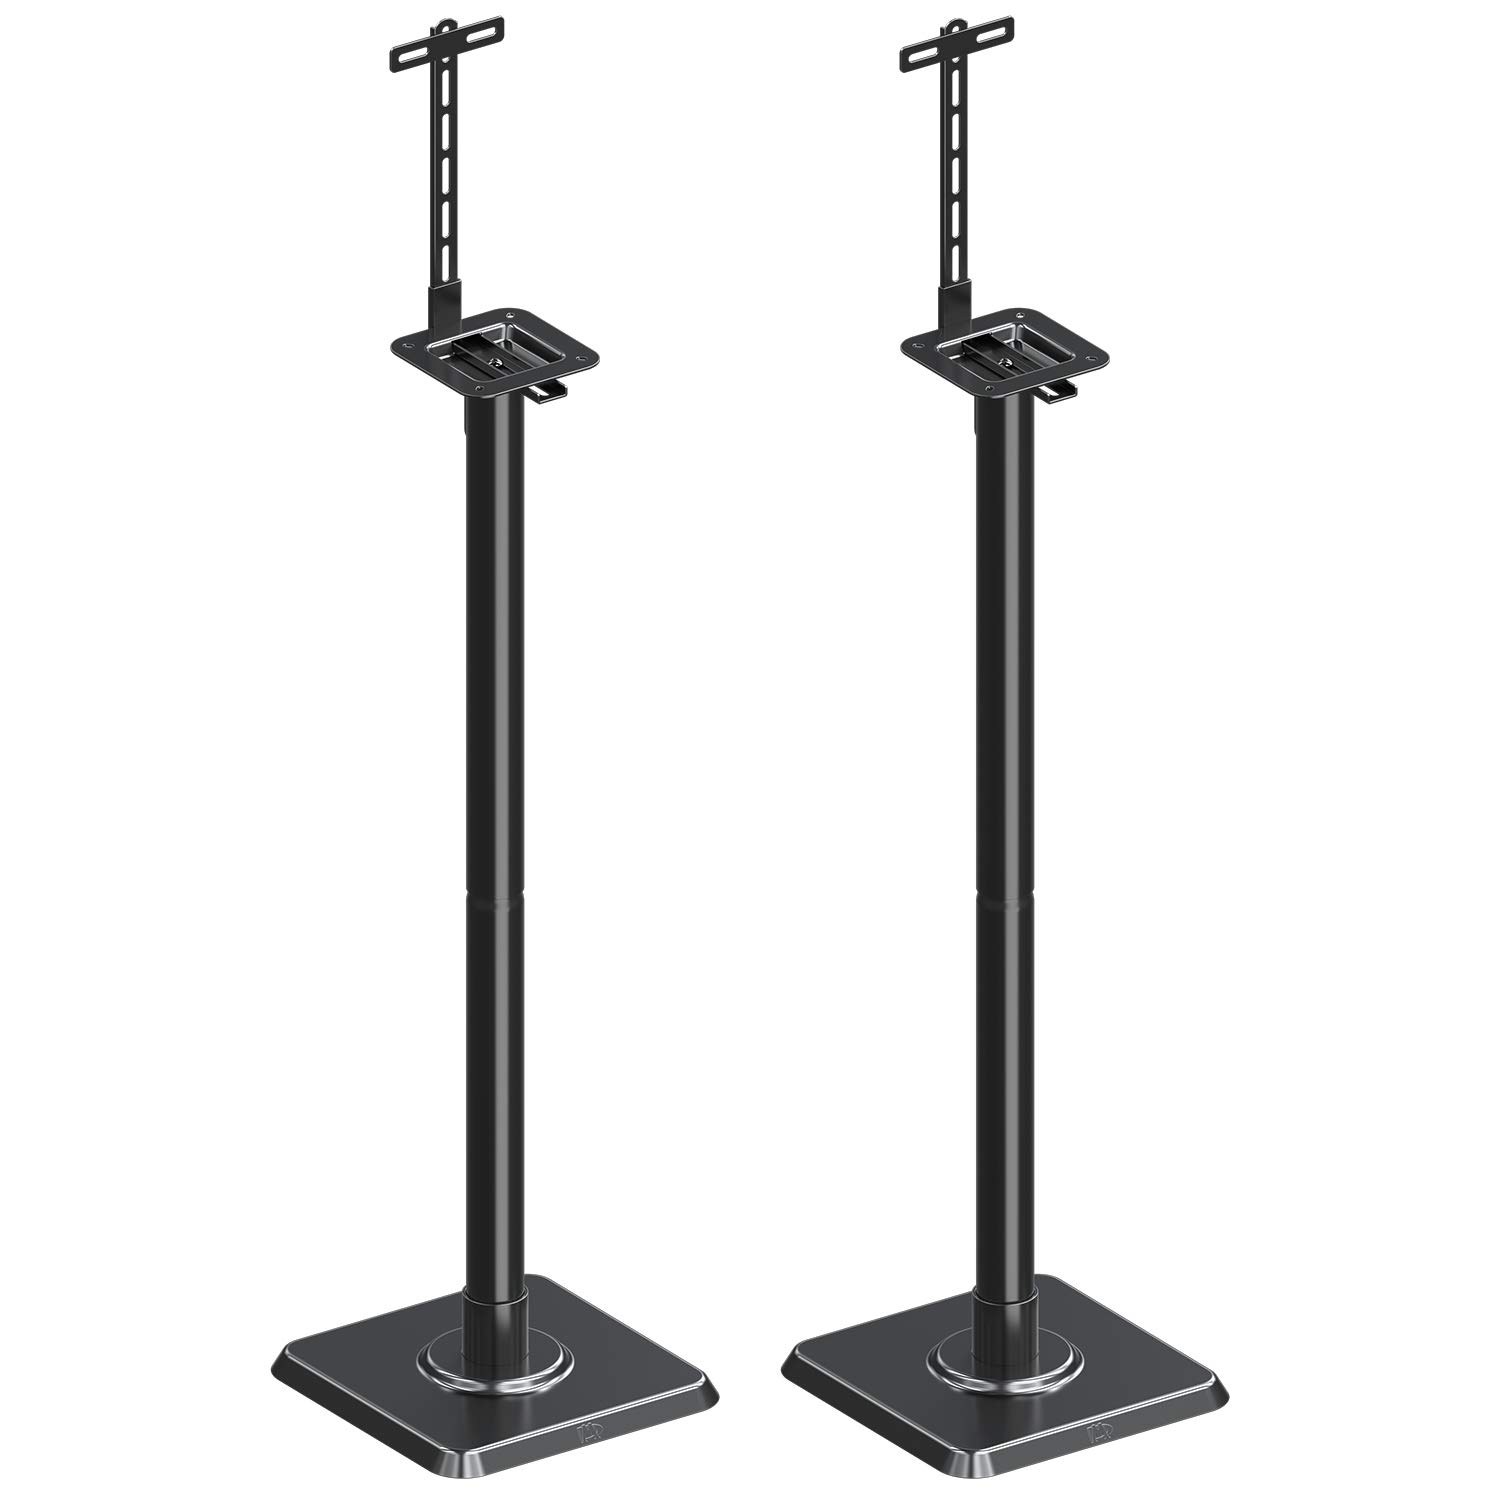 Mounting Dream Speaker Stand Speaker Floor Stand Sound Stand Mount Built-in Cable Management Universal, 11LBS Capacity Per Stand with Adjustable Post Assembly for Surround Sound (2 Set)